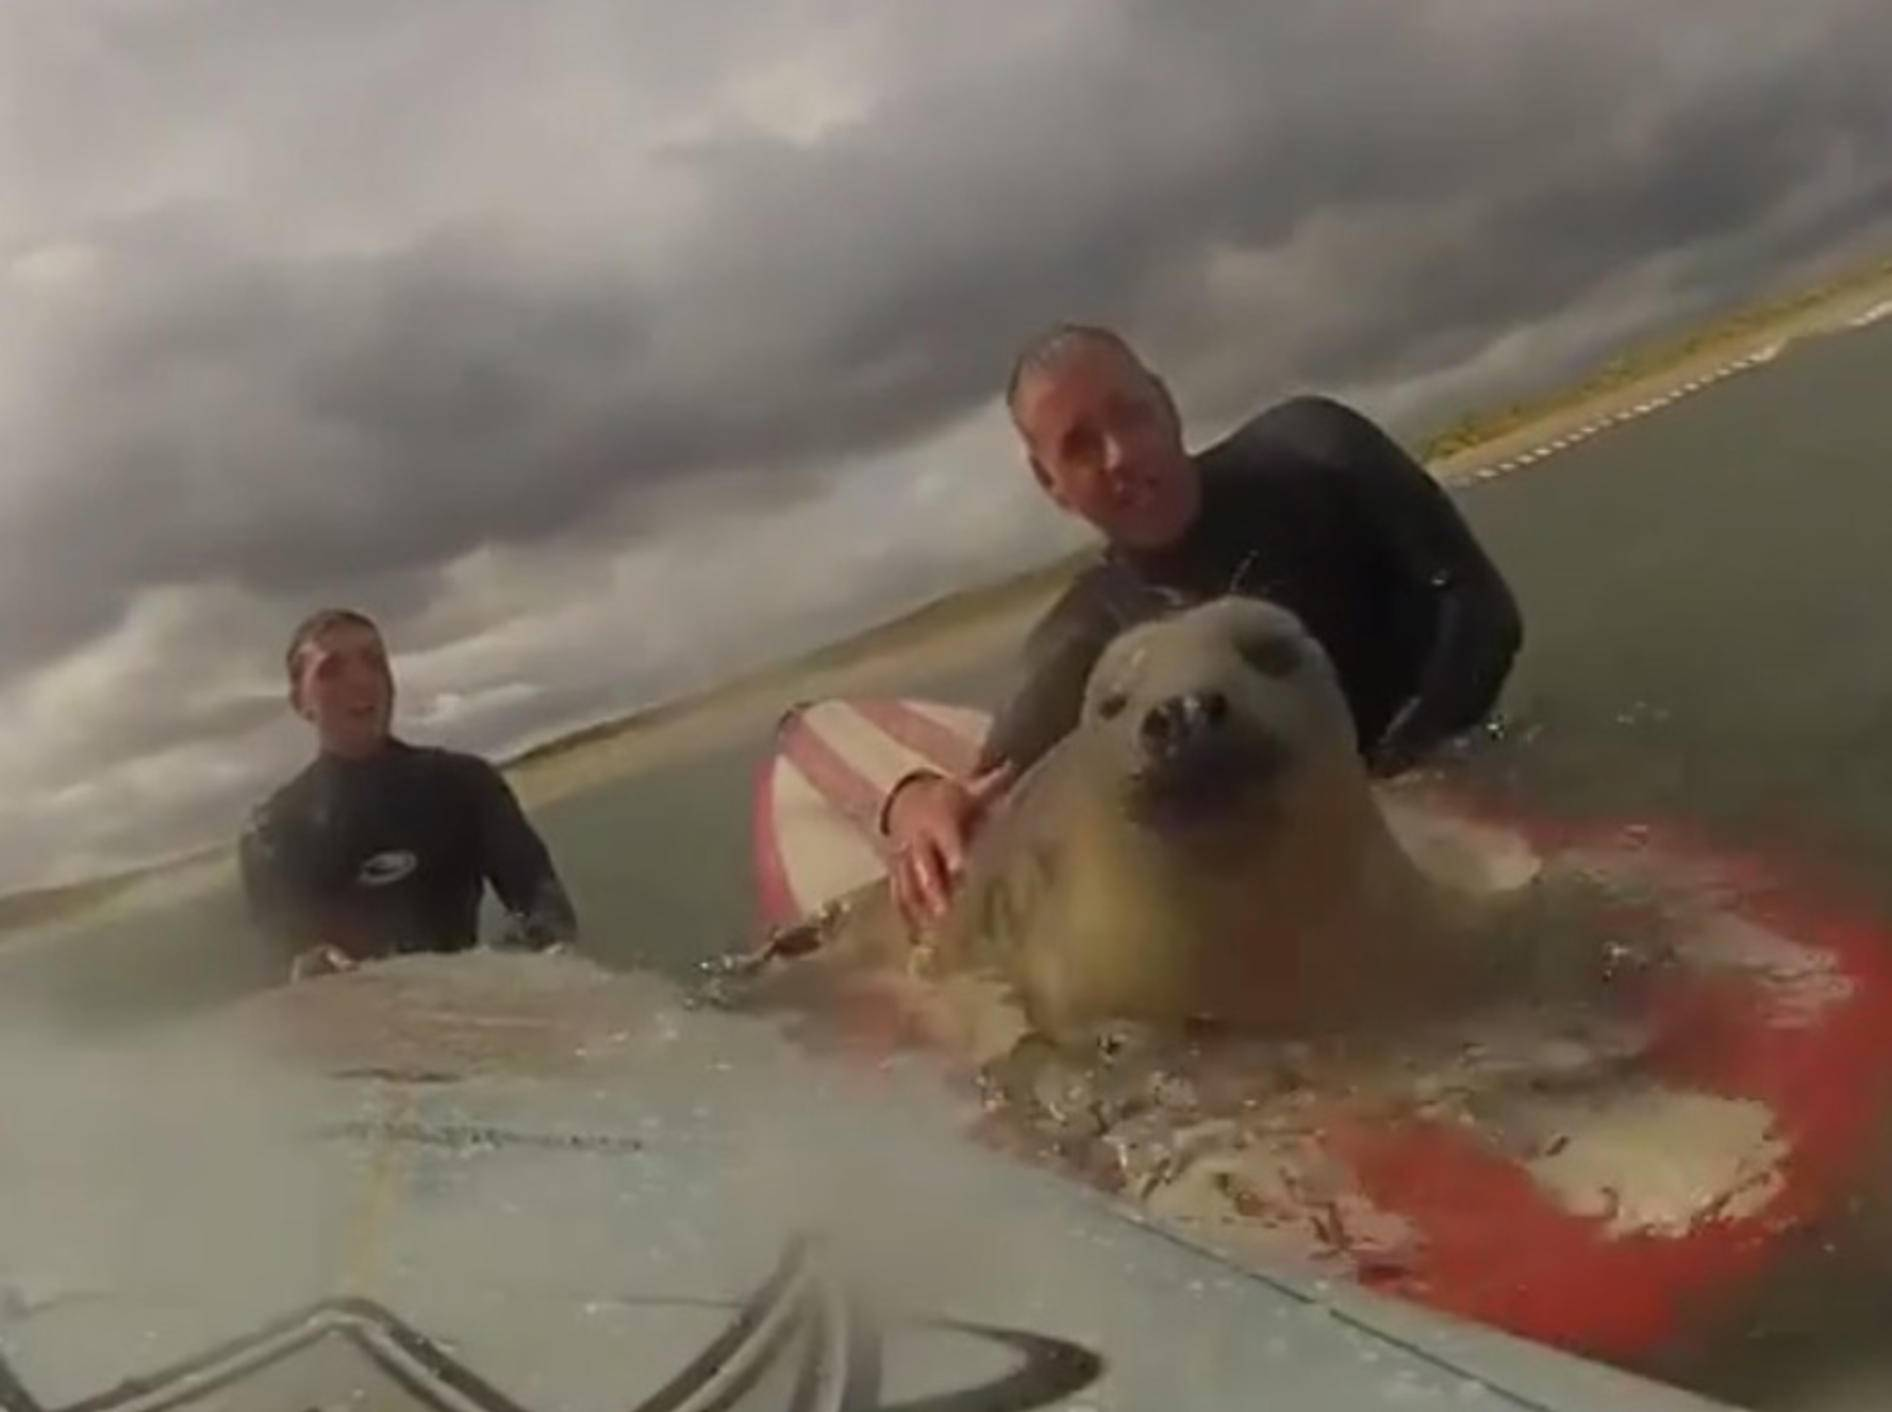 Coole Robbe chillt auf Surfbrett – Bild: Youtube / Insolitevideo